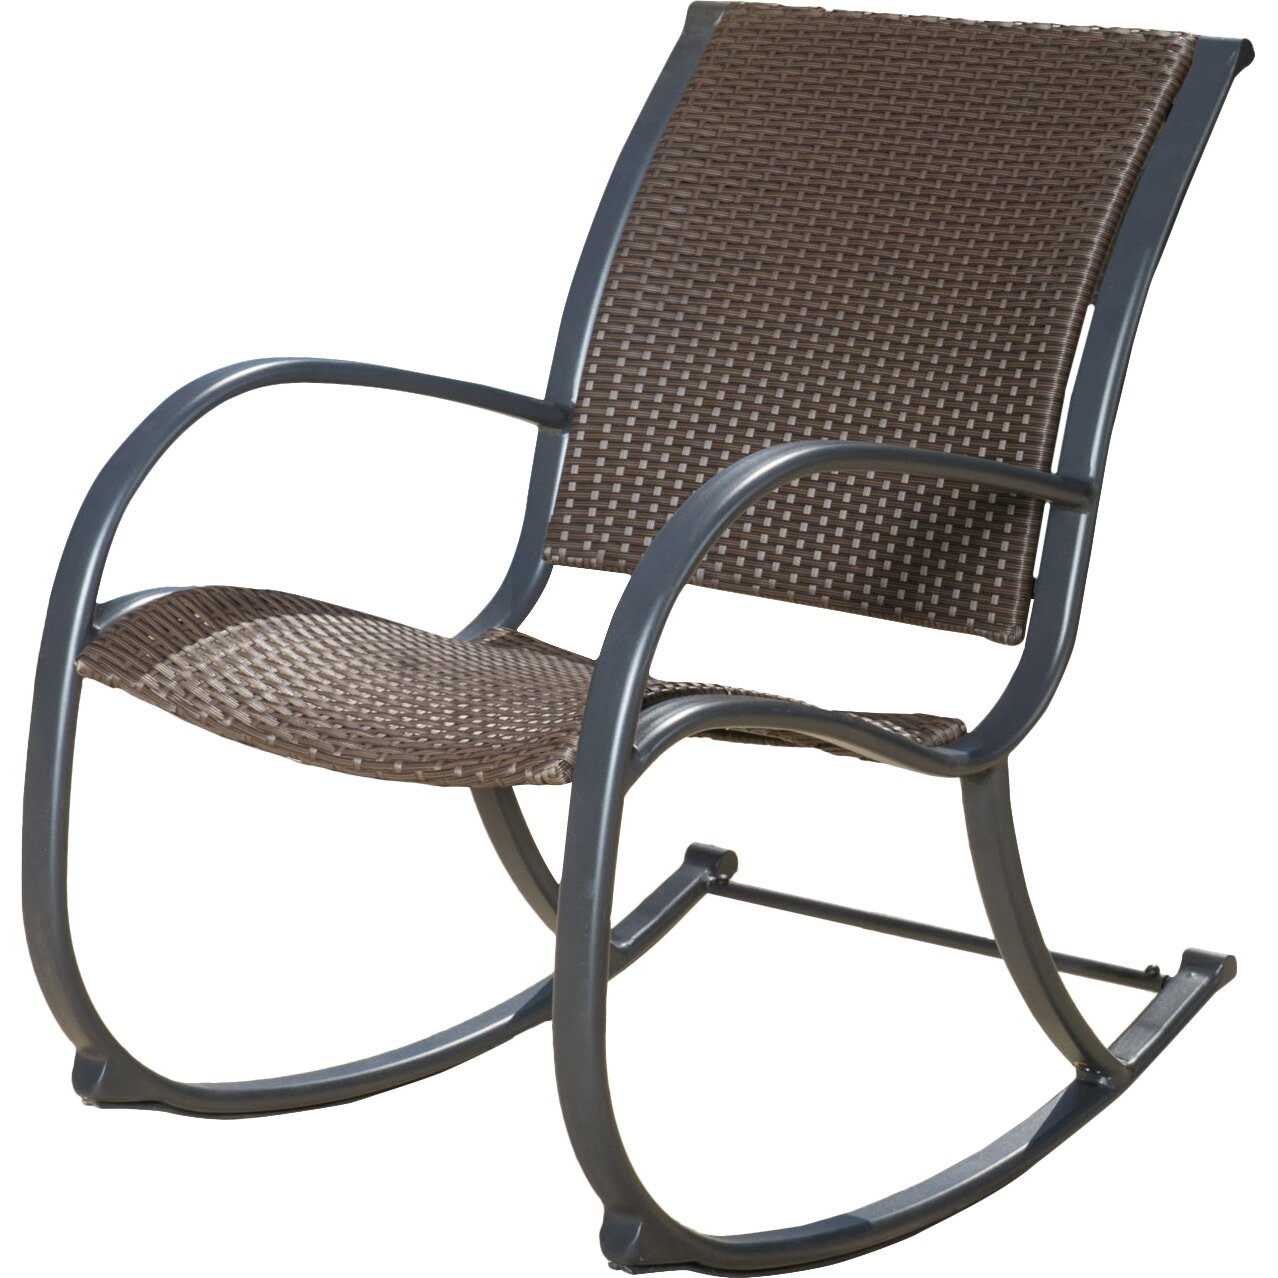 ... Wicker/Rattan Patio Rocking Chairs Home Loft Concepts SKU: FOME1382